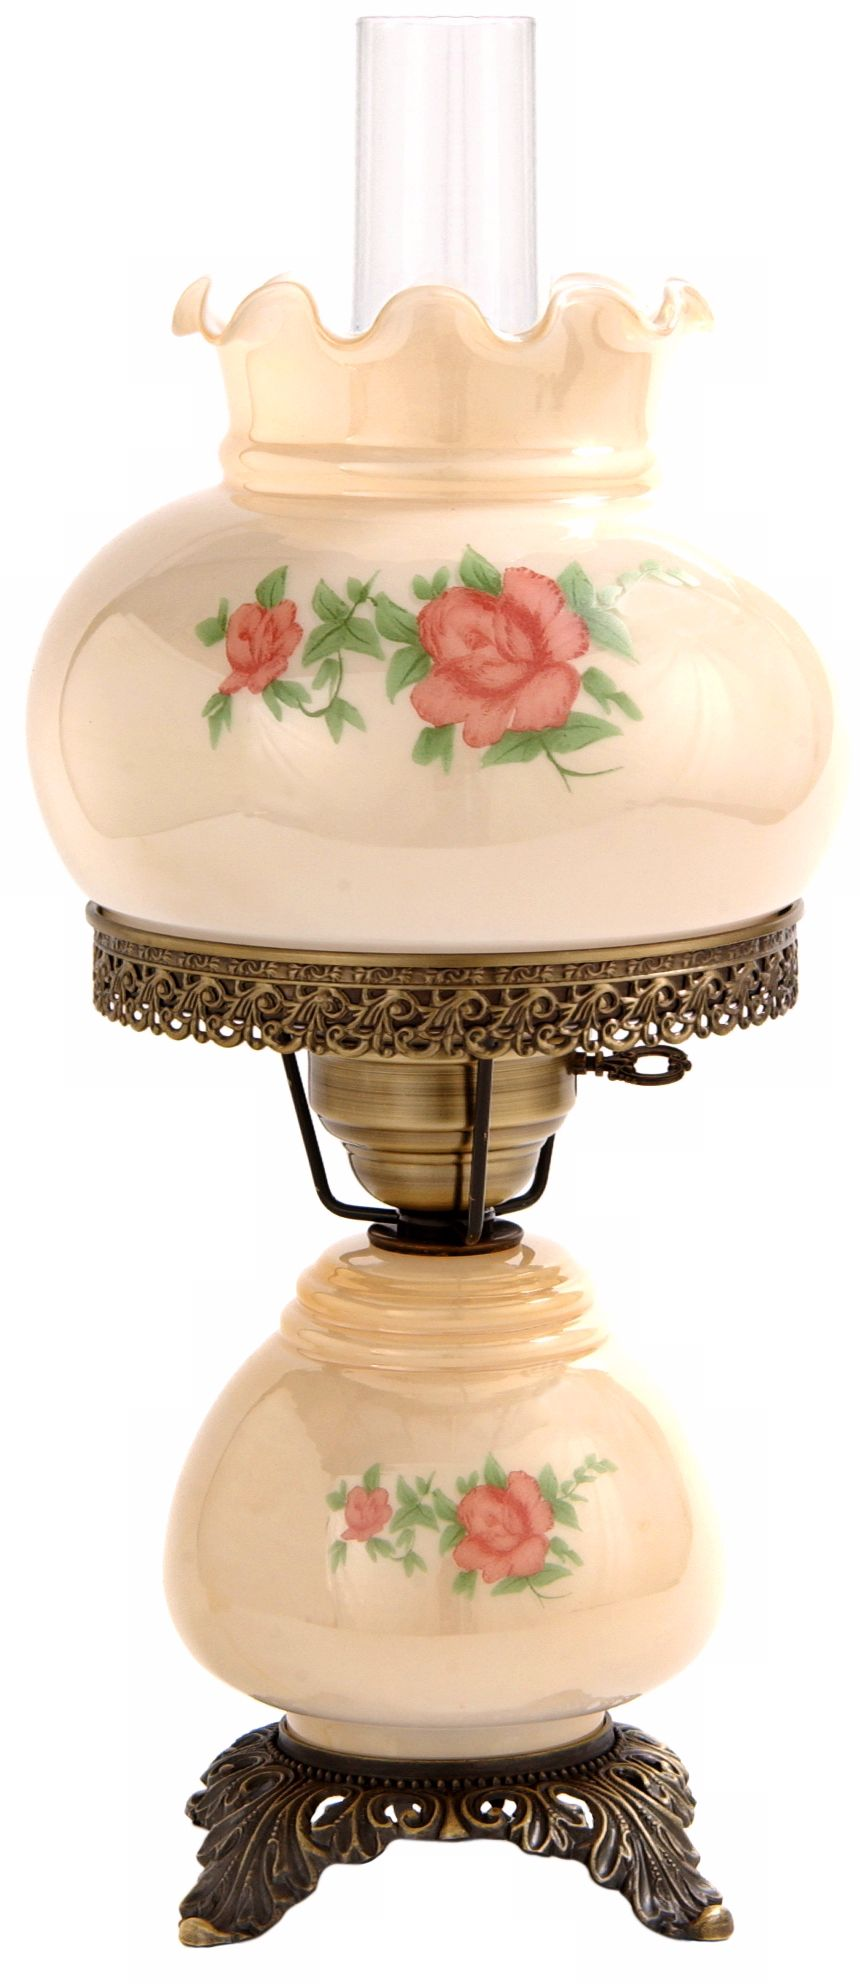 hurricane lamps small red rose 18 LASMMKM